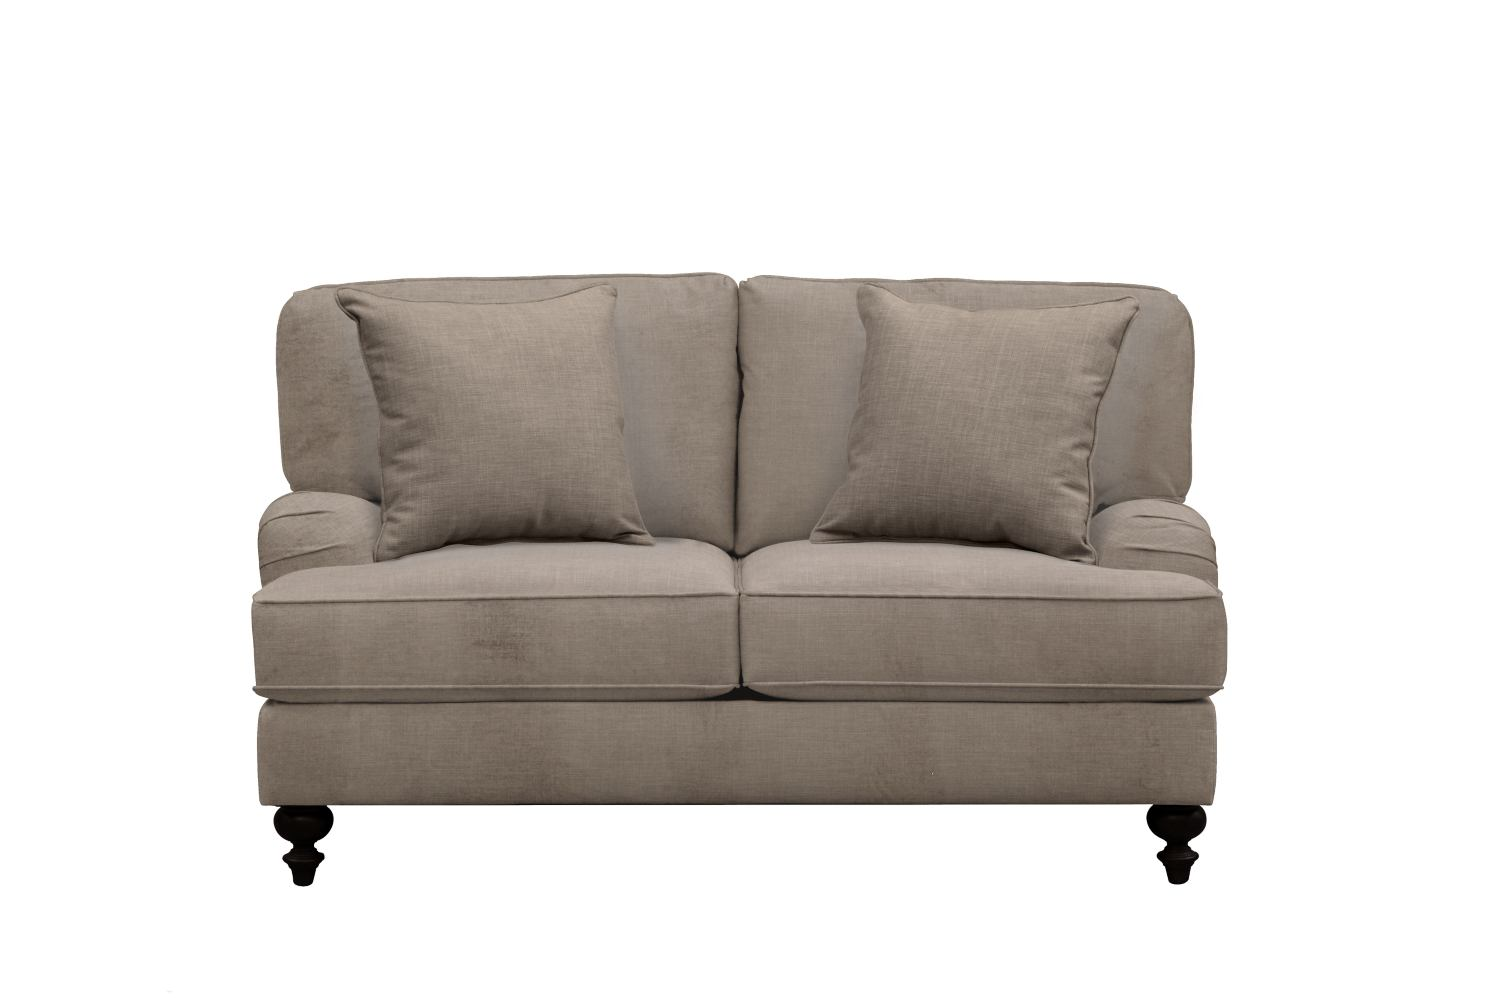 "Living Room Furniture - Avery English Arm Sofa 62"" Oakley III Granite w/ Oakley III Granite Pillow"